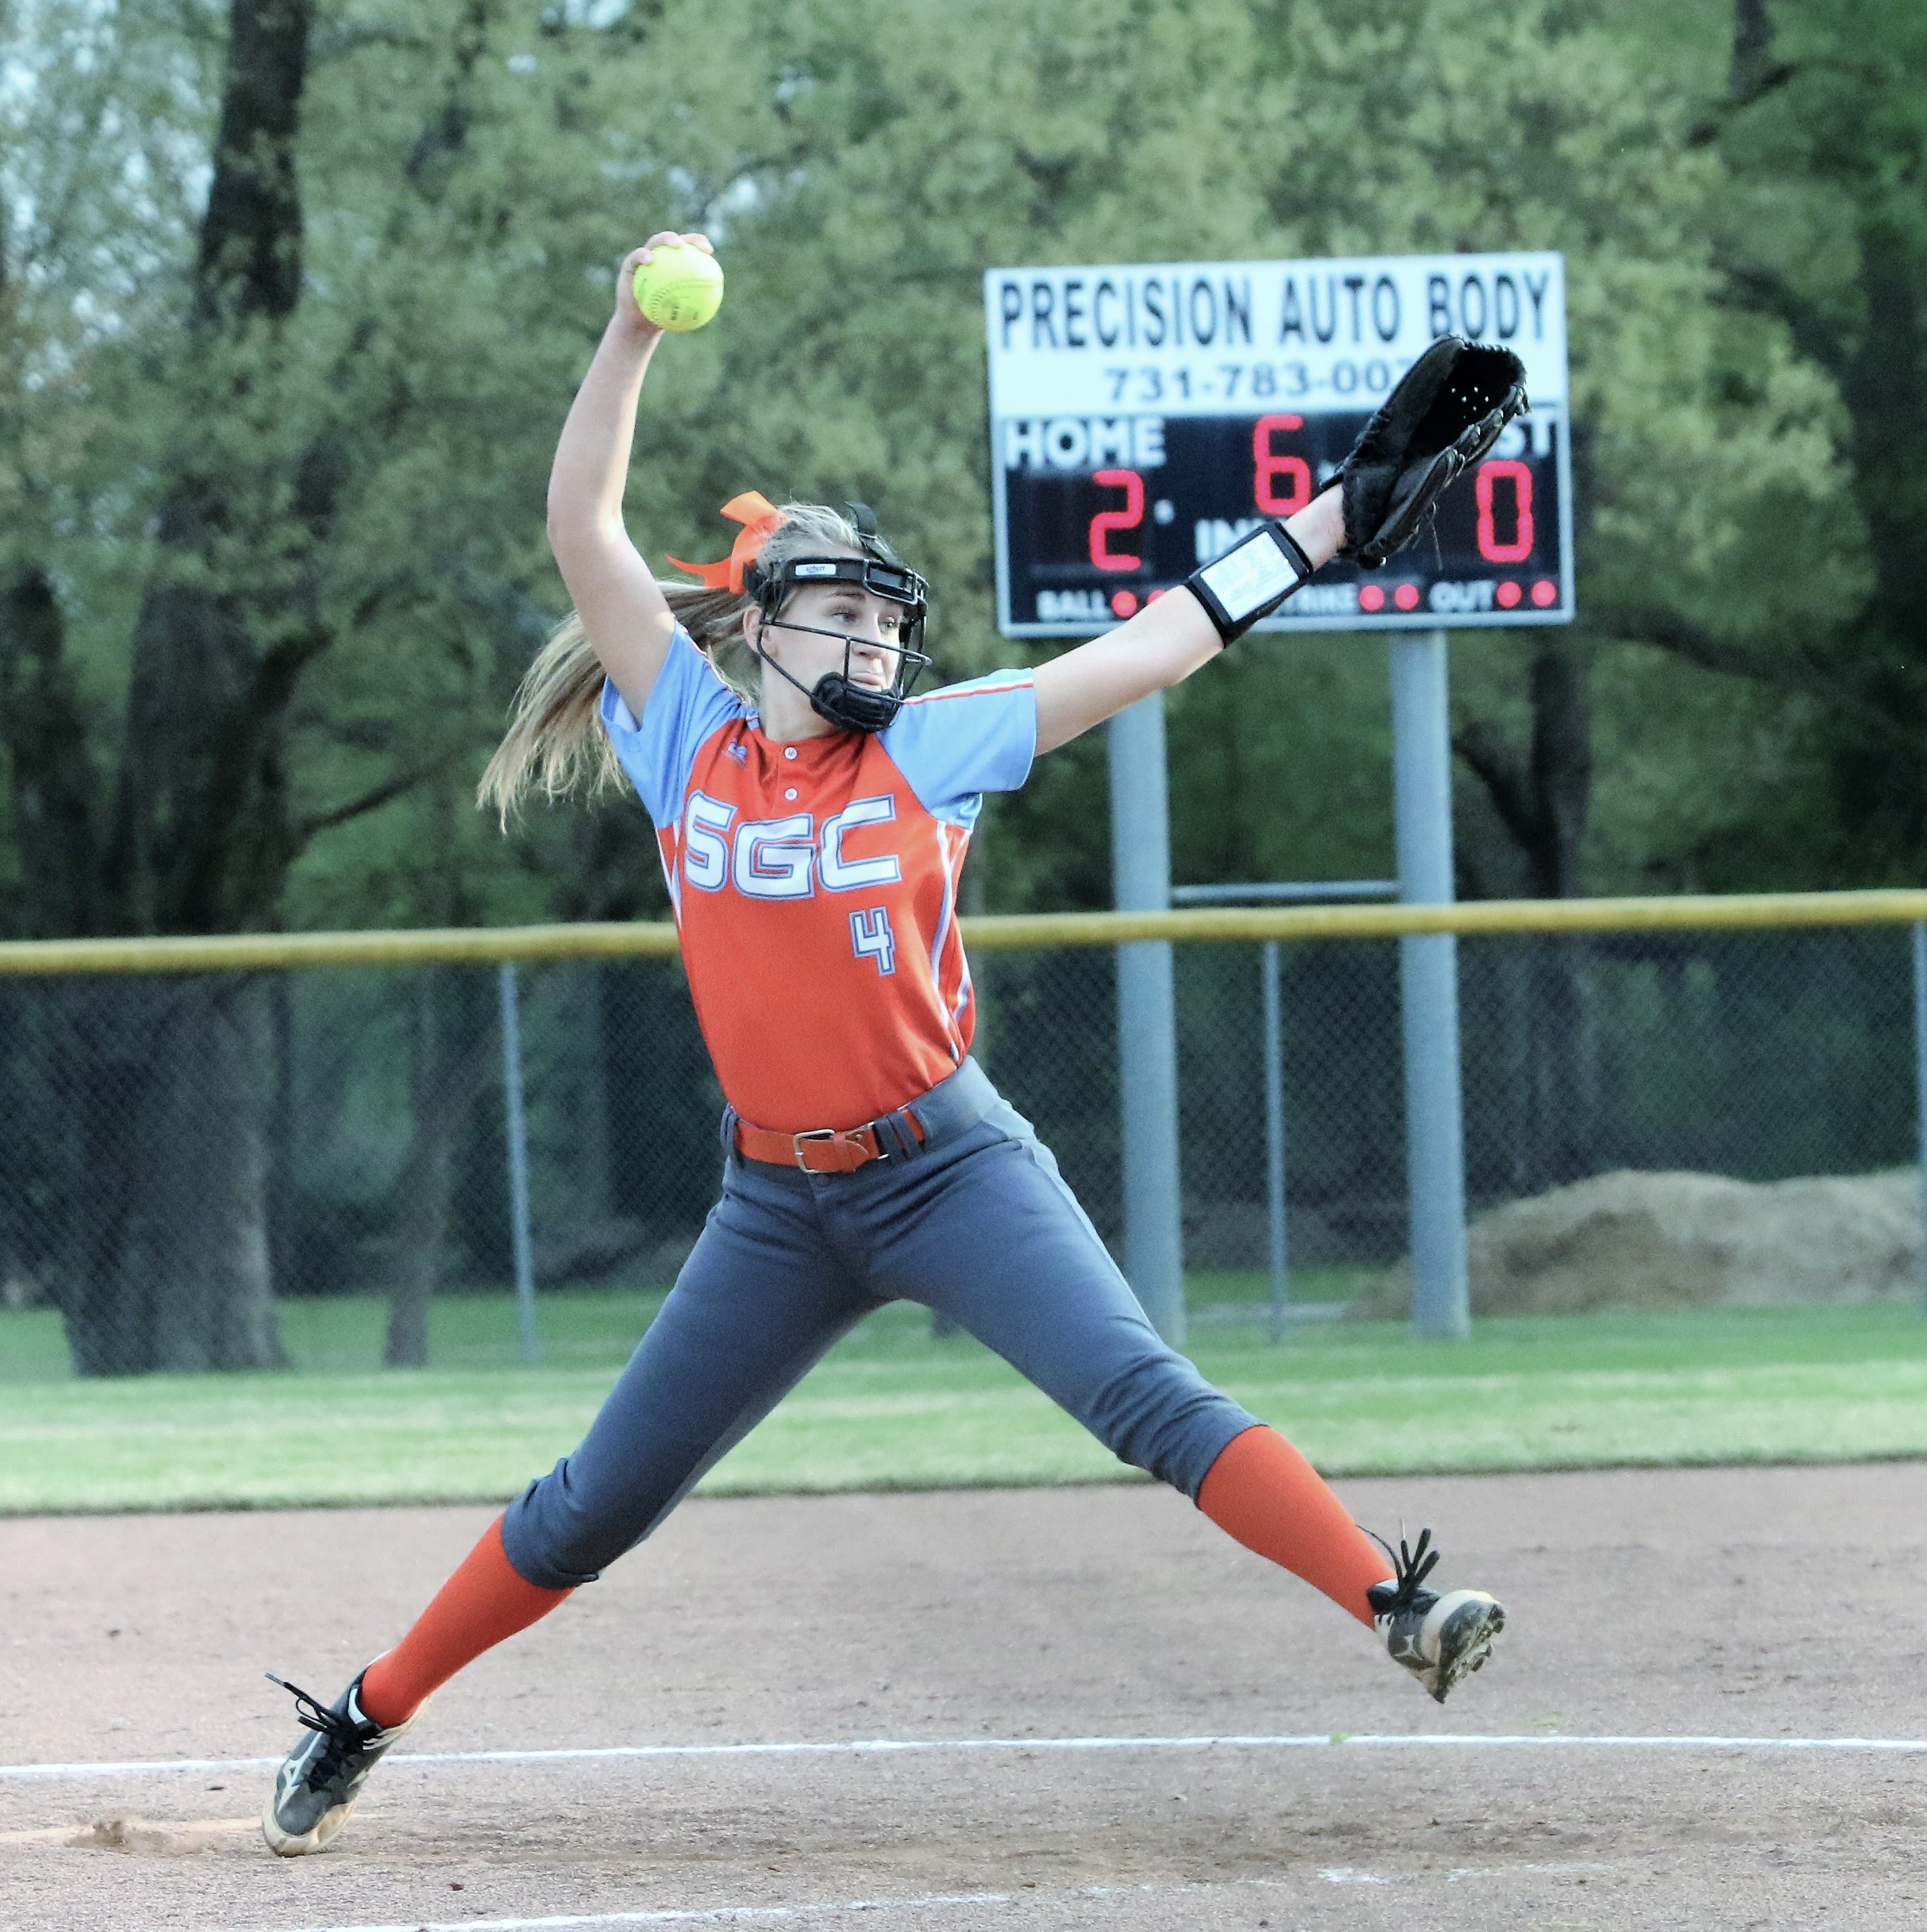 South Gibson unbeaten in past 9 to stay No. 4 in Jackson area softball rankings